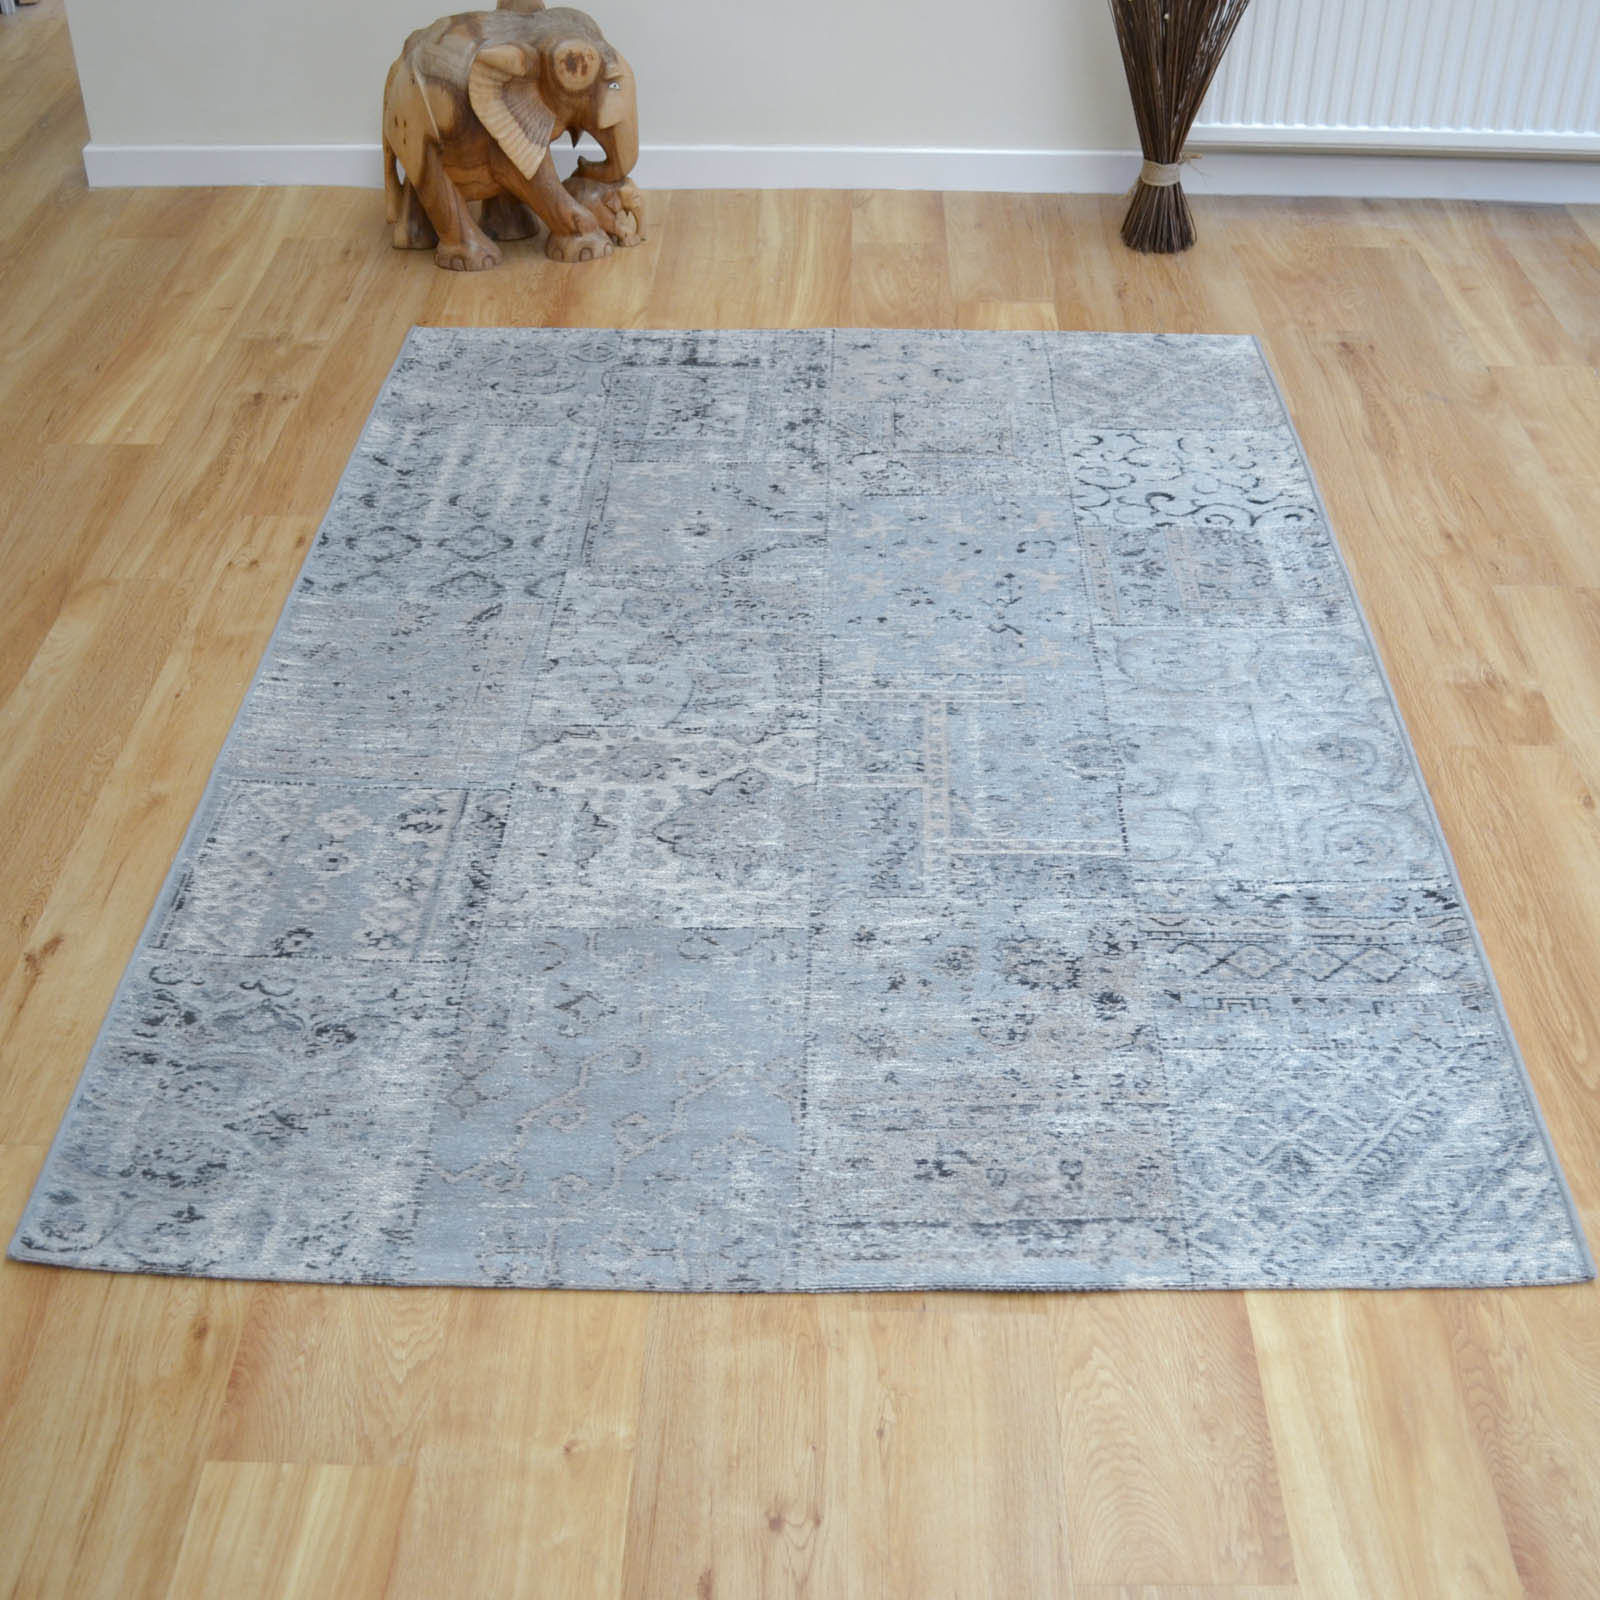 Capri Rugs 91210 3002 in Grey